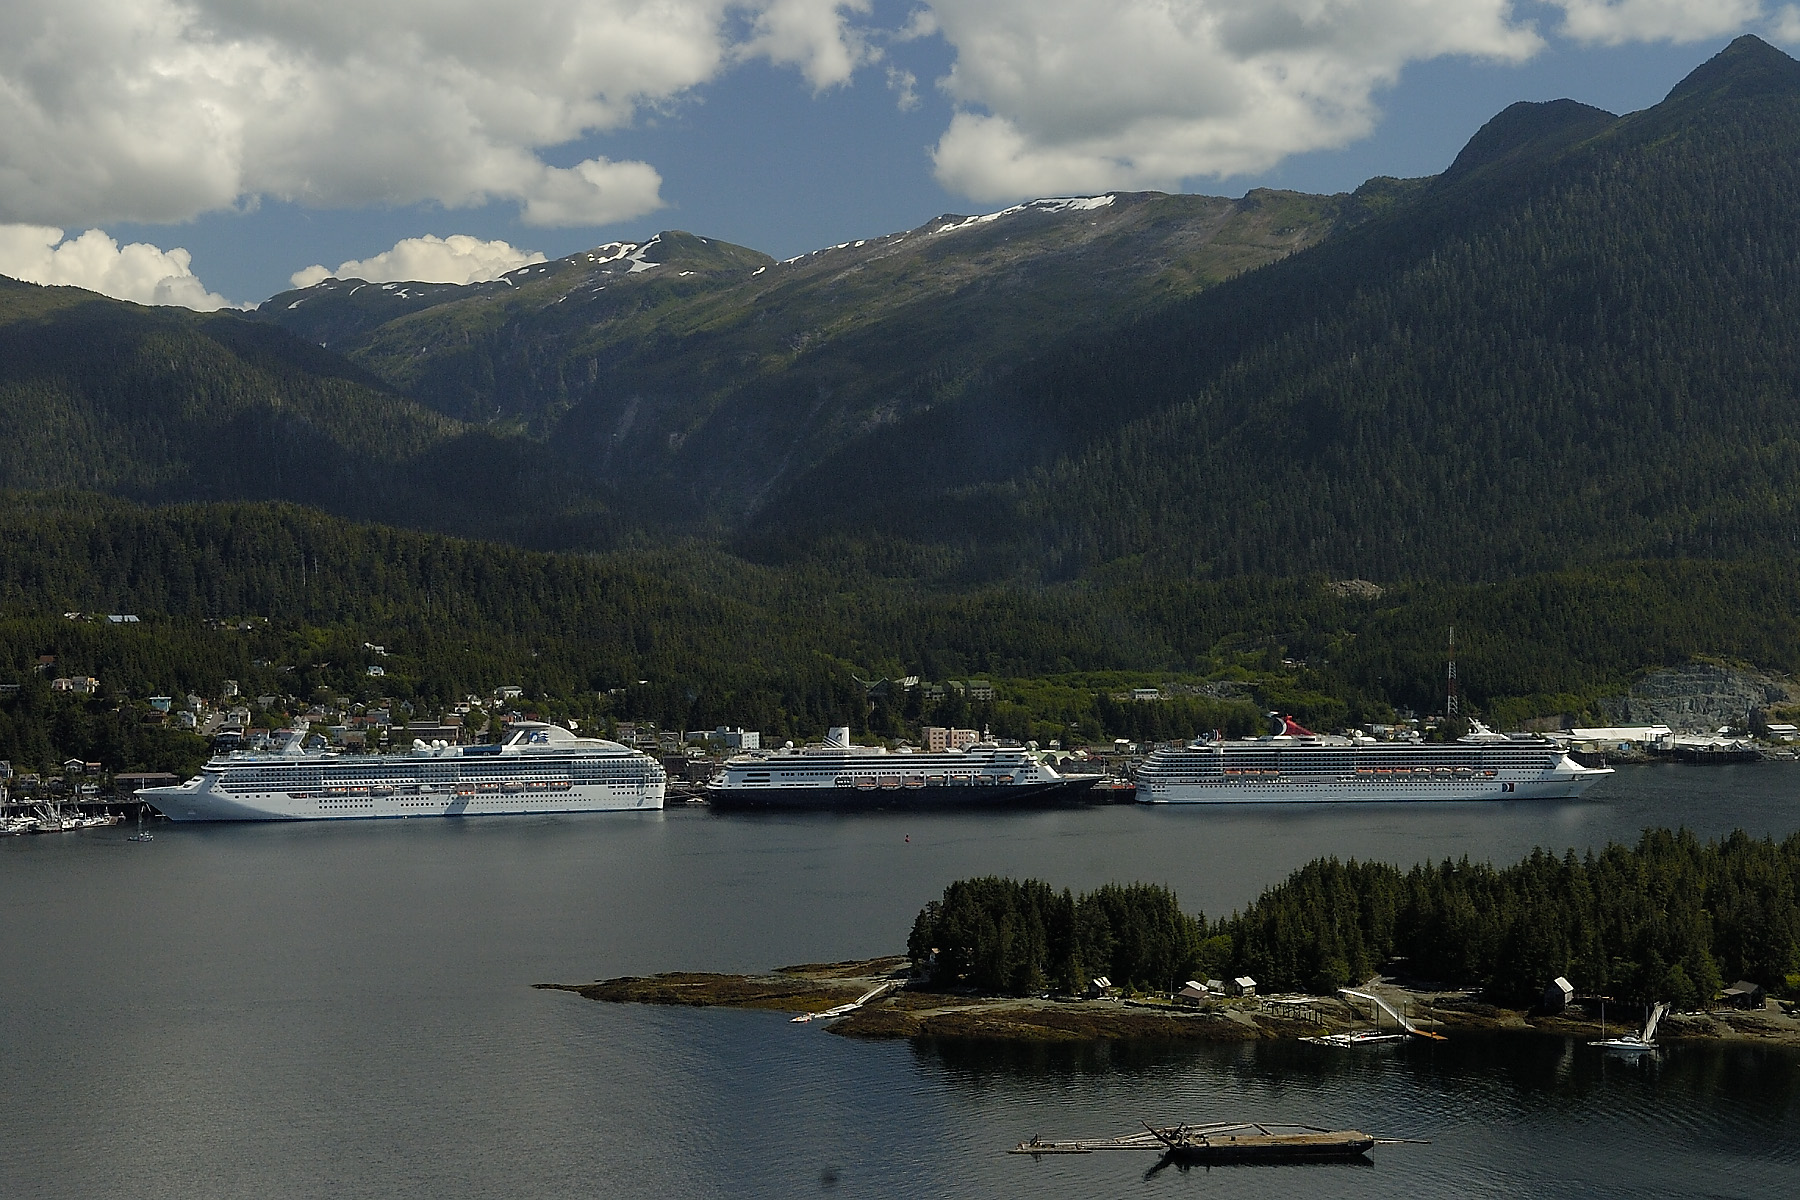 Ships in port in Ketchikan from the float plane